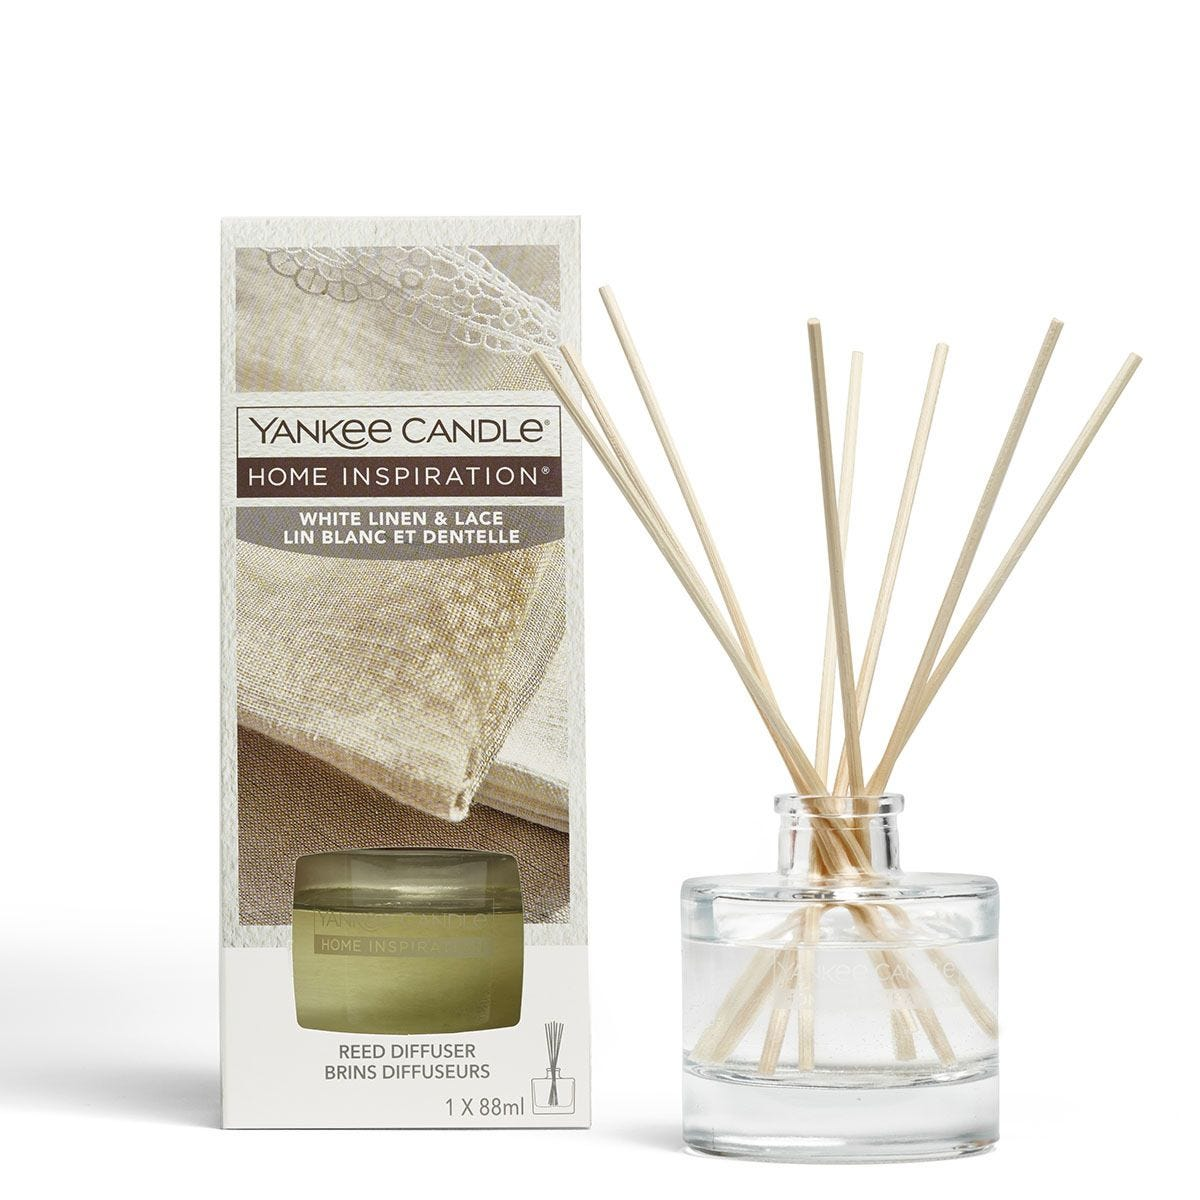 Yankee Candle Home Inspiration White Linen and Lace Reed Diffuser